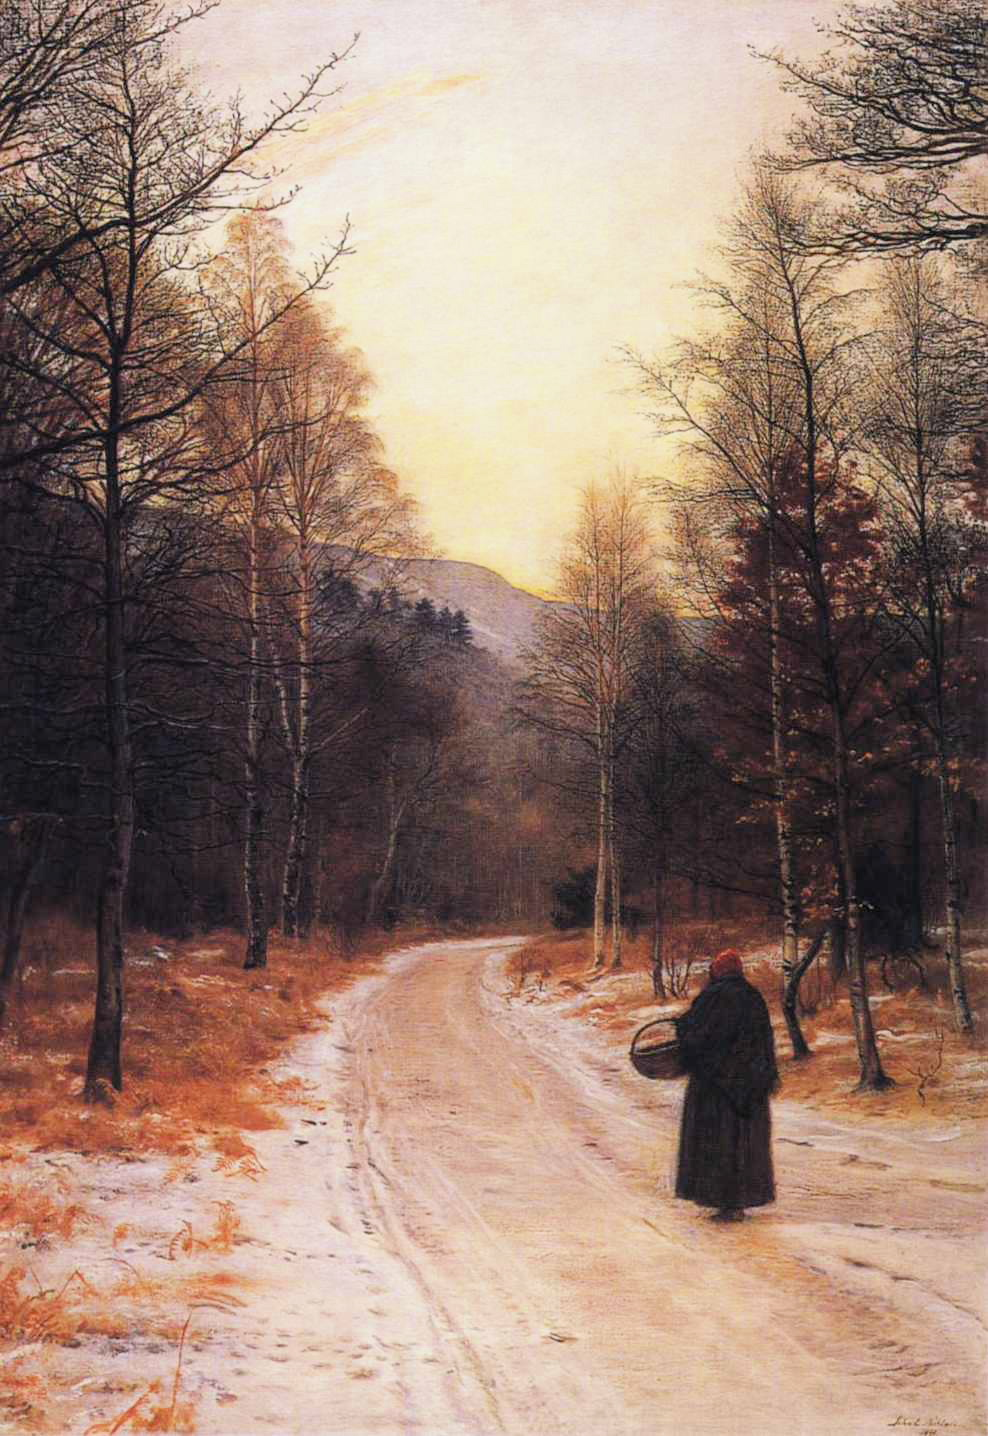 http://upload.wikimedia.org/wikipedia/commons/5/52/John_Everett_Millais_-_Glen_Birnam.JPG